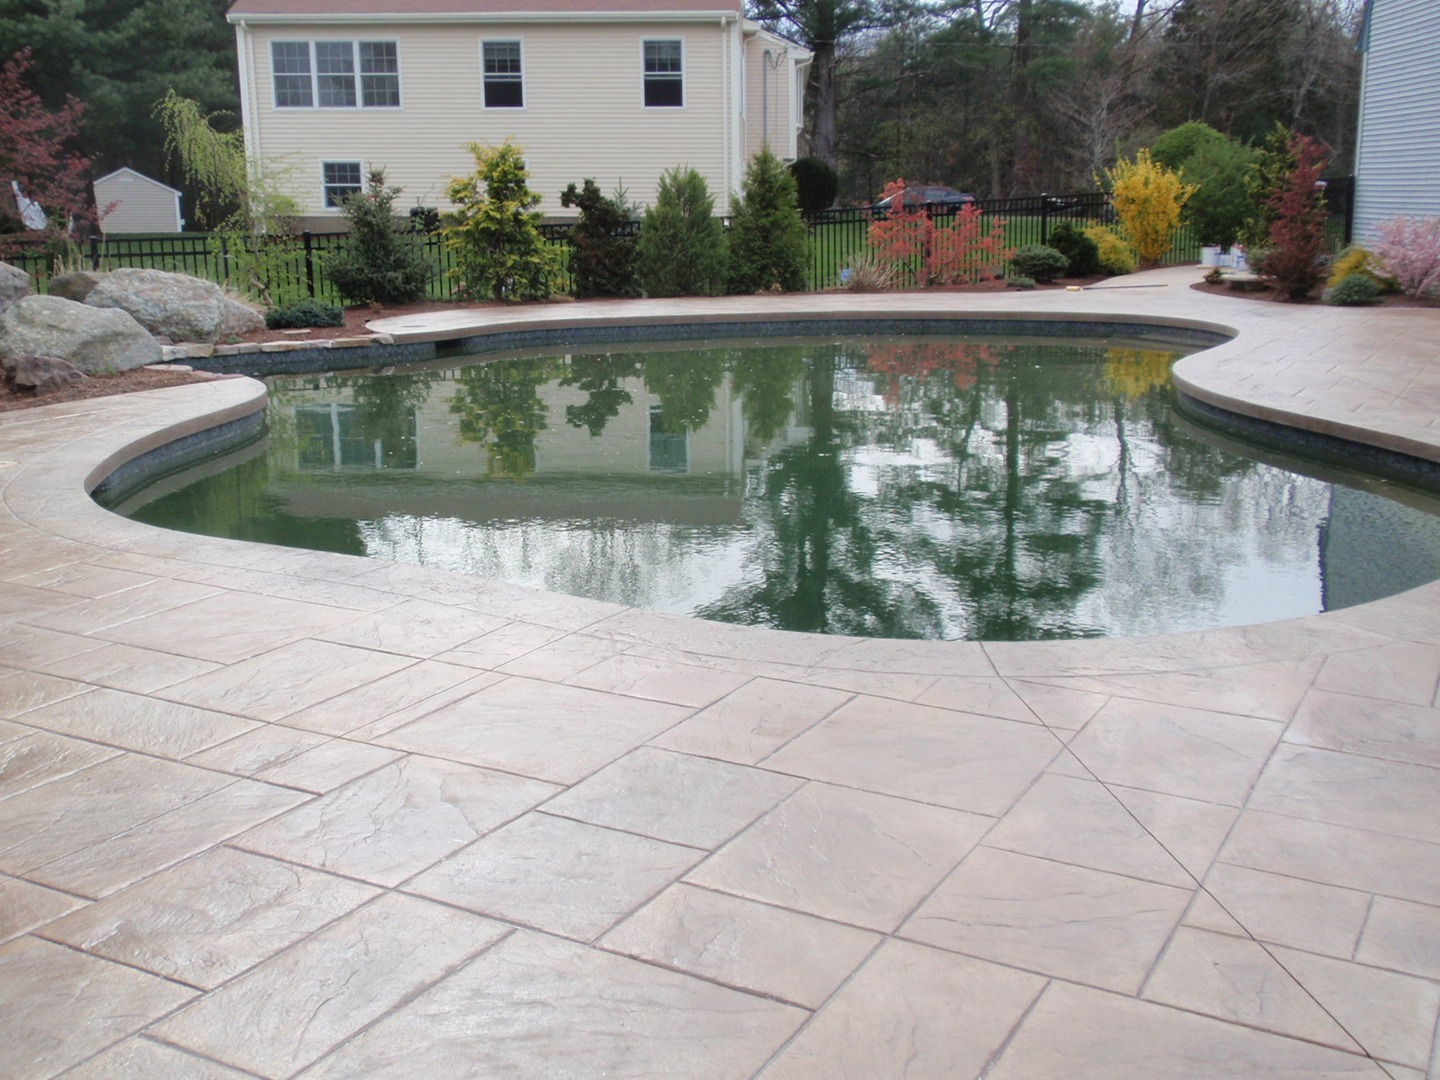 Sealing exposed aggregate pool deck - Stamped Concrete Cleaning Sealing Proper Cleaning And Sealing Of Your Stamped Or Exposed Aggregate Concrete Pool Patio Deck